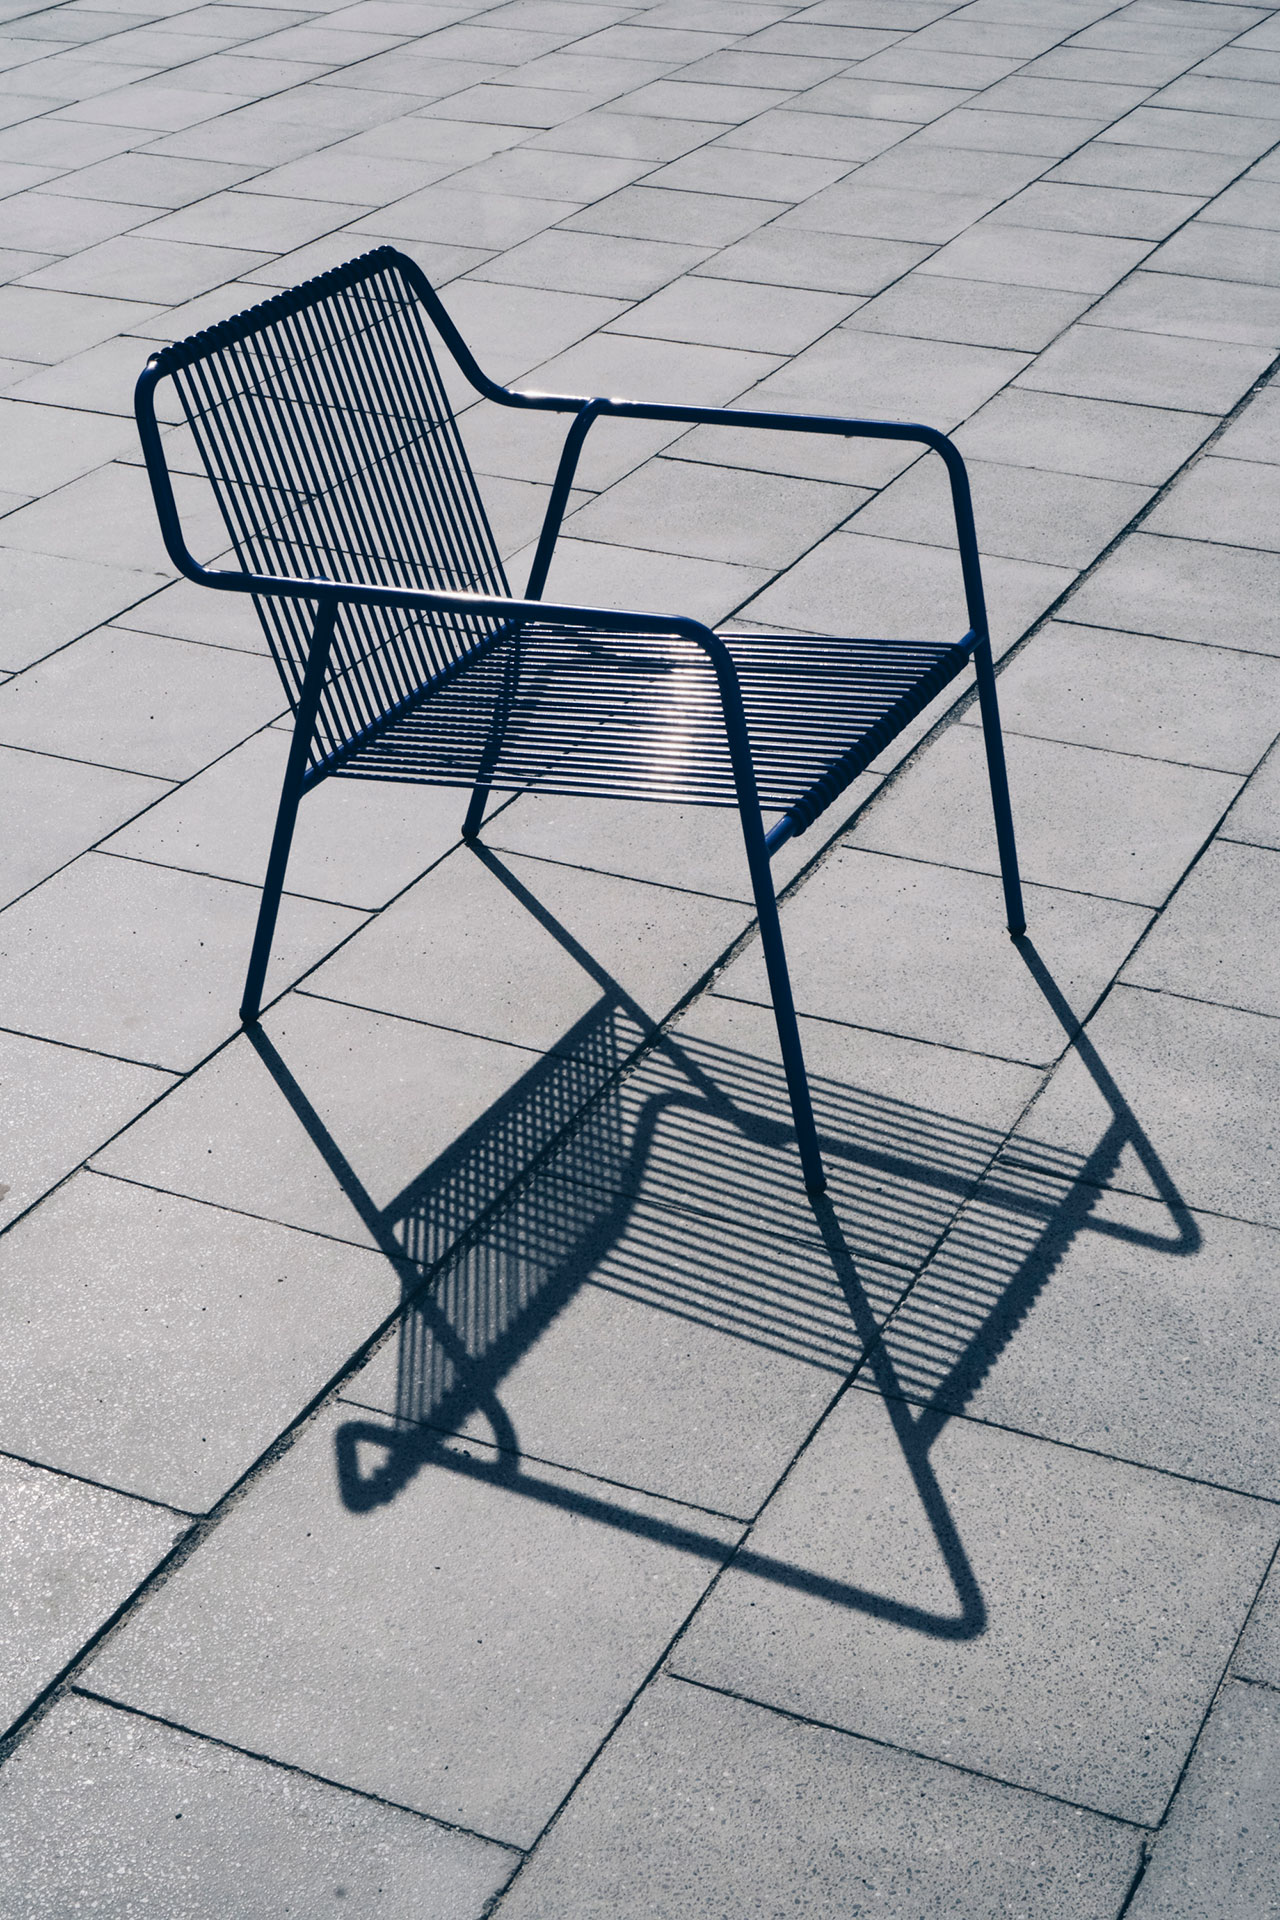 Mike lounge chair by Local Industries. Photo by Mothana Hussein. © 2018 Local Industries